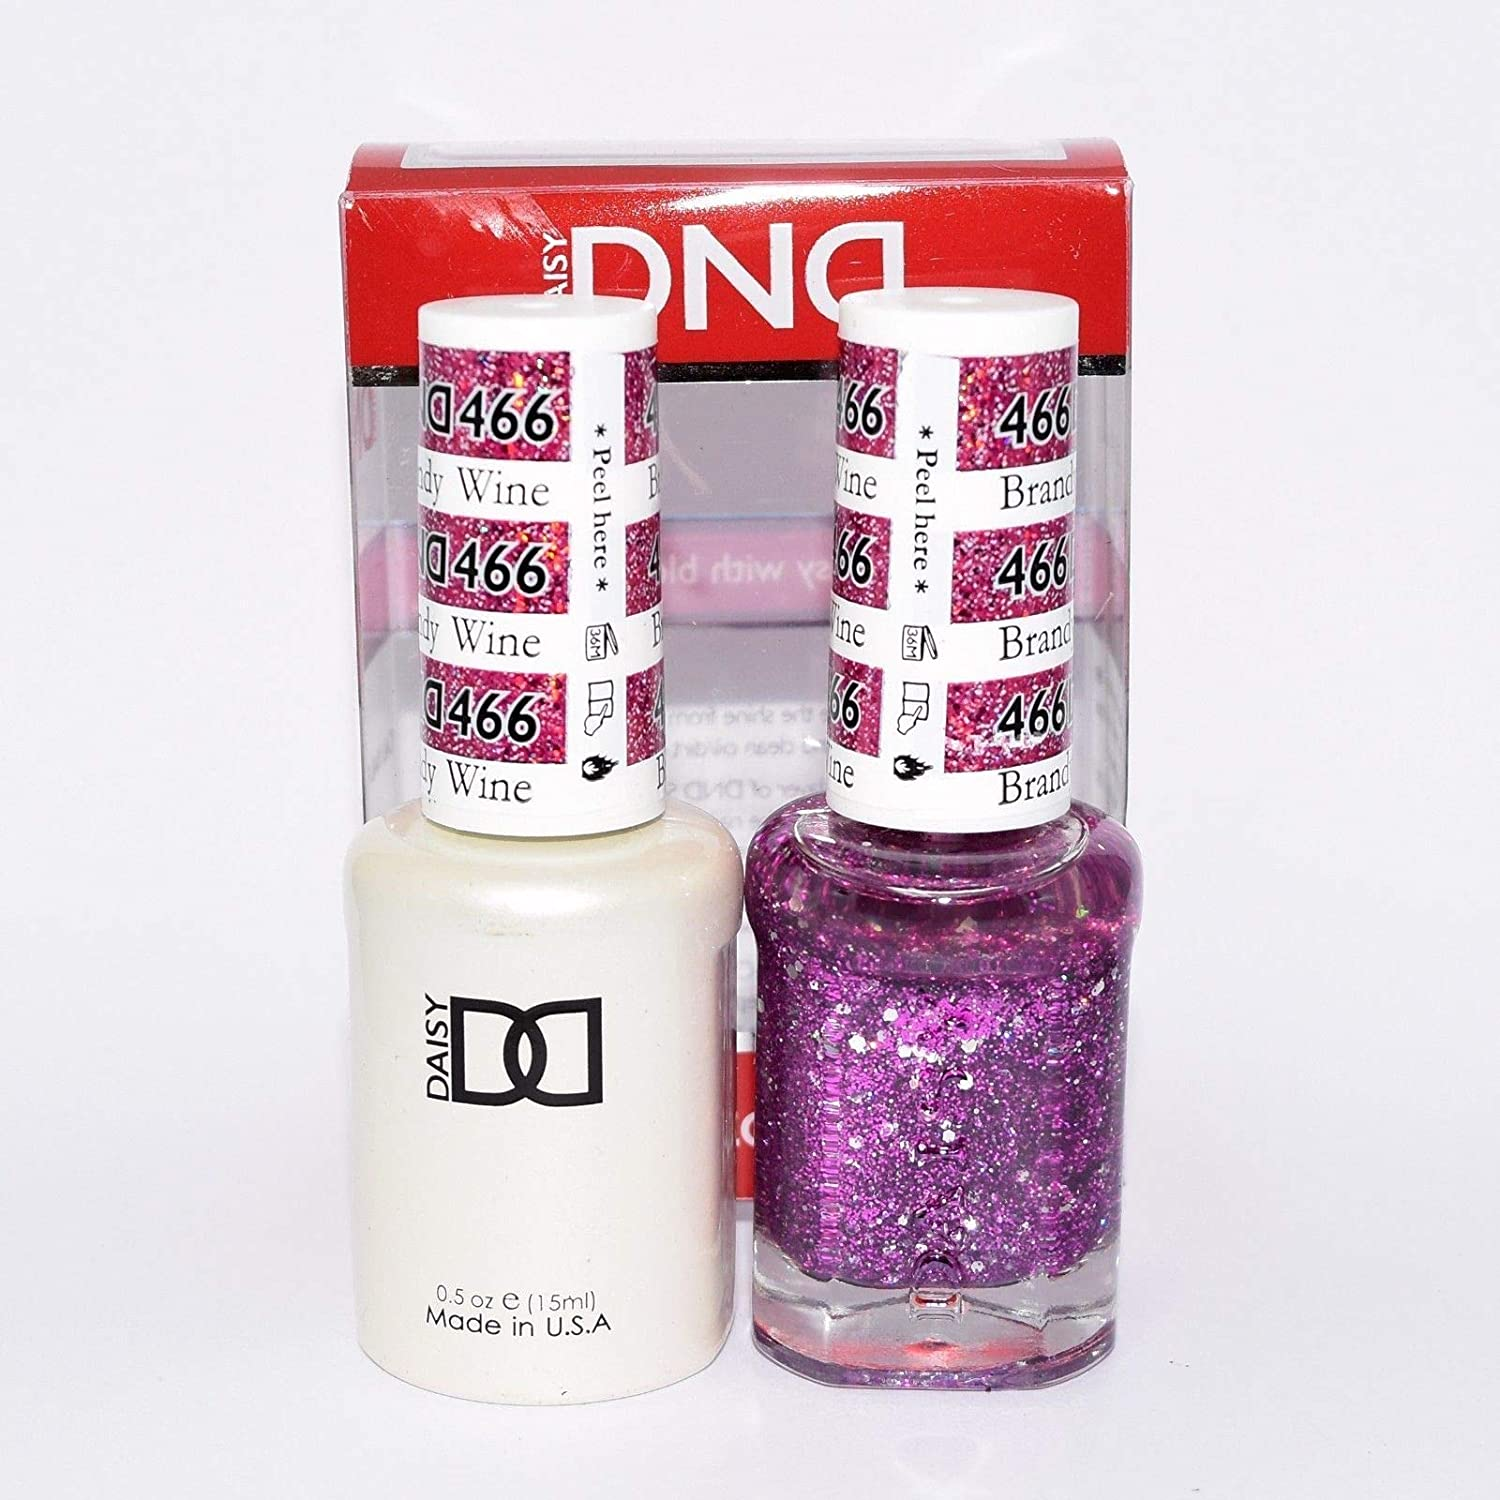 DND *Duo Gel* (Gel & Matching Polish) Glitter Set 466 - Brandy Wine by dnd